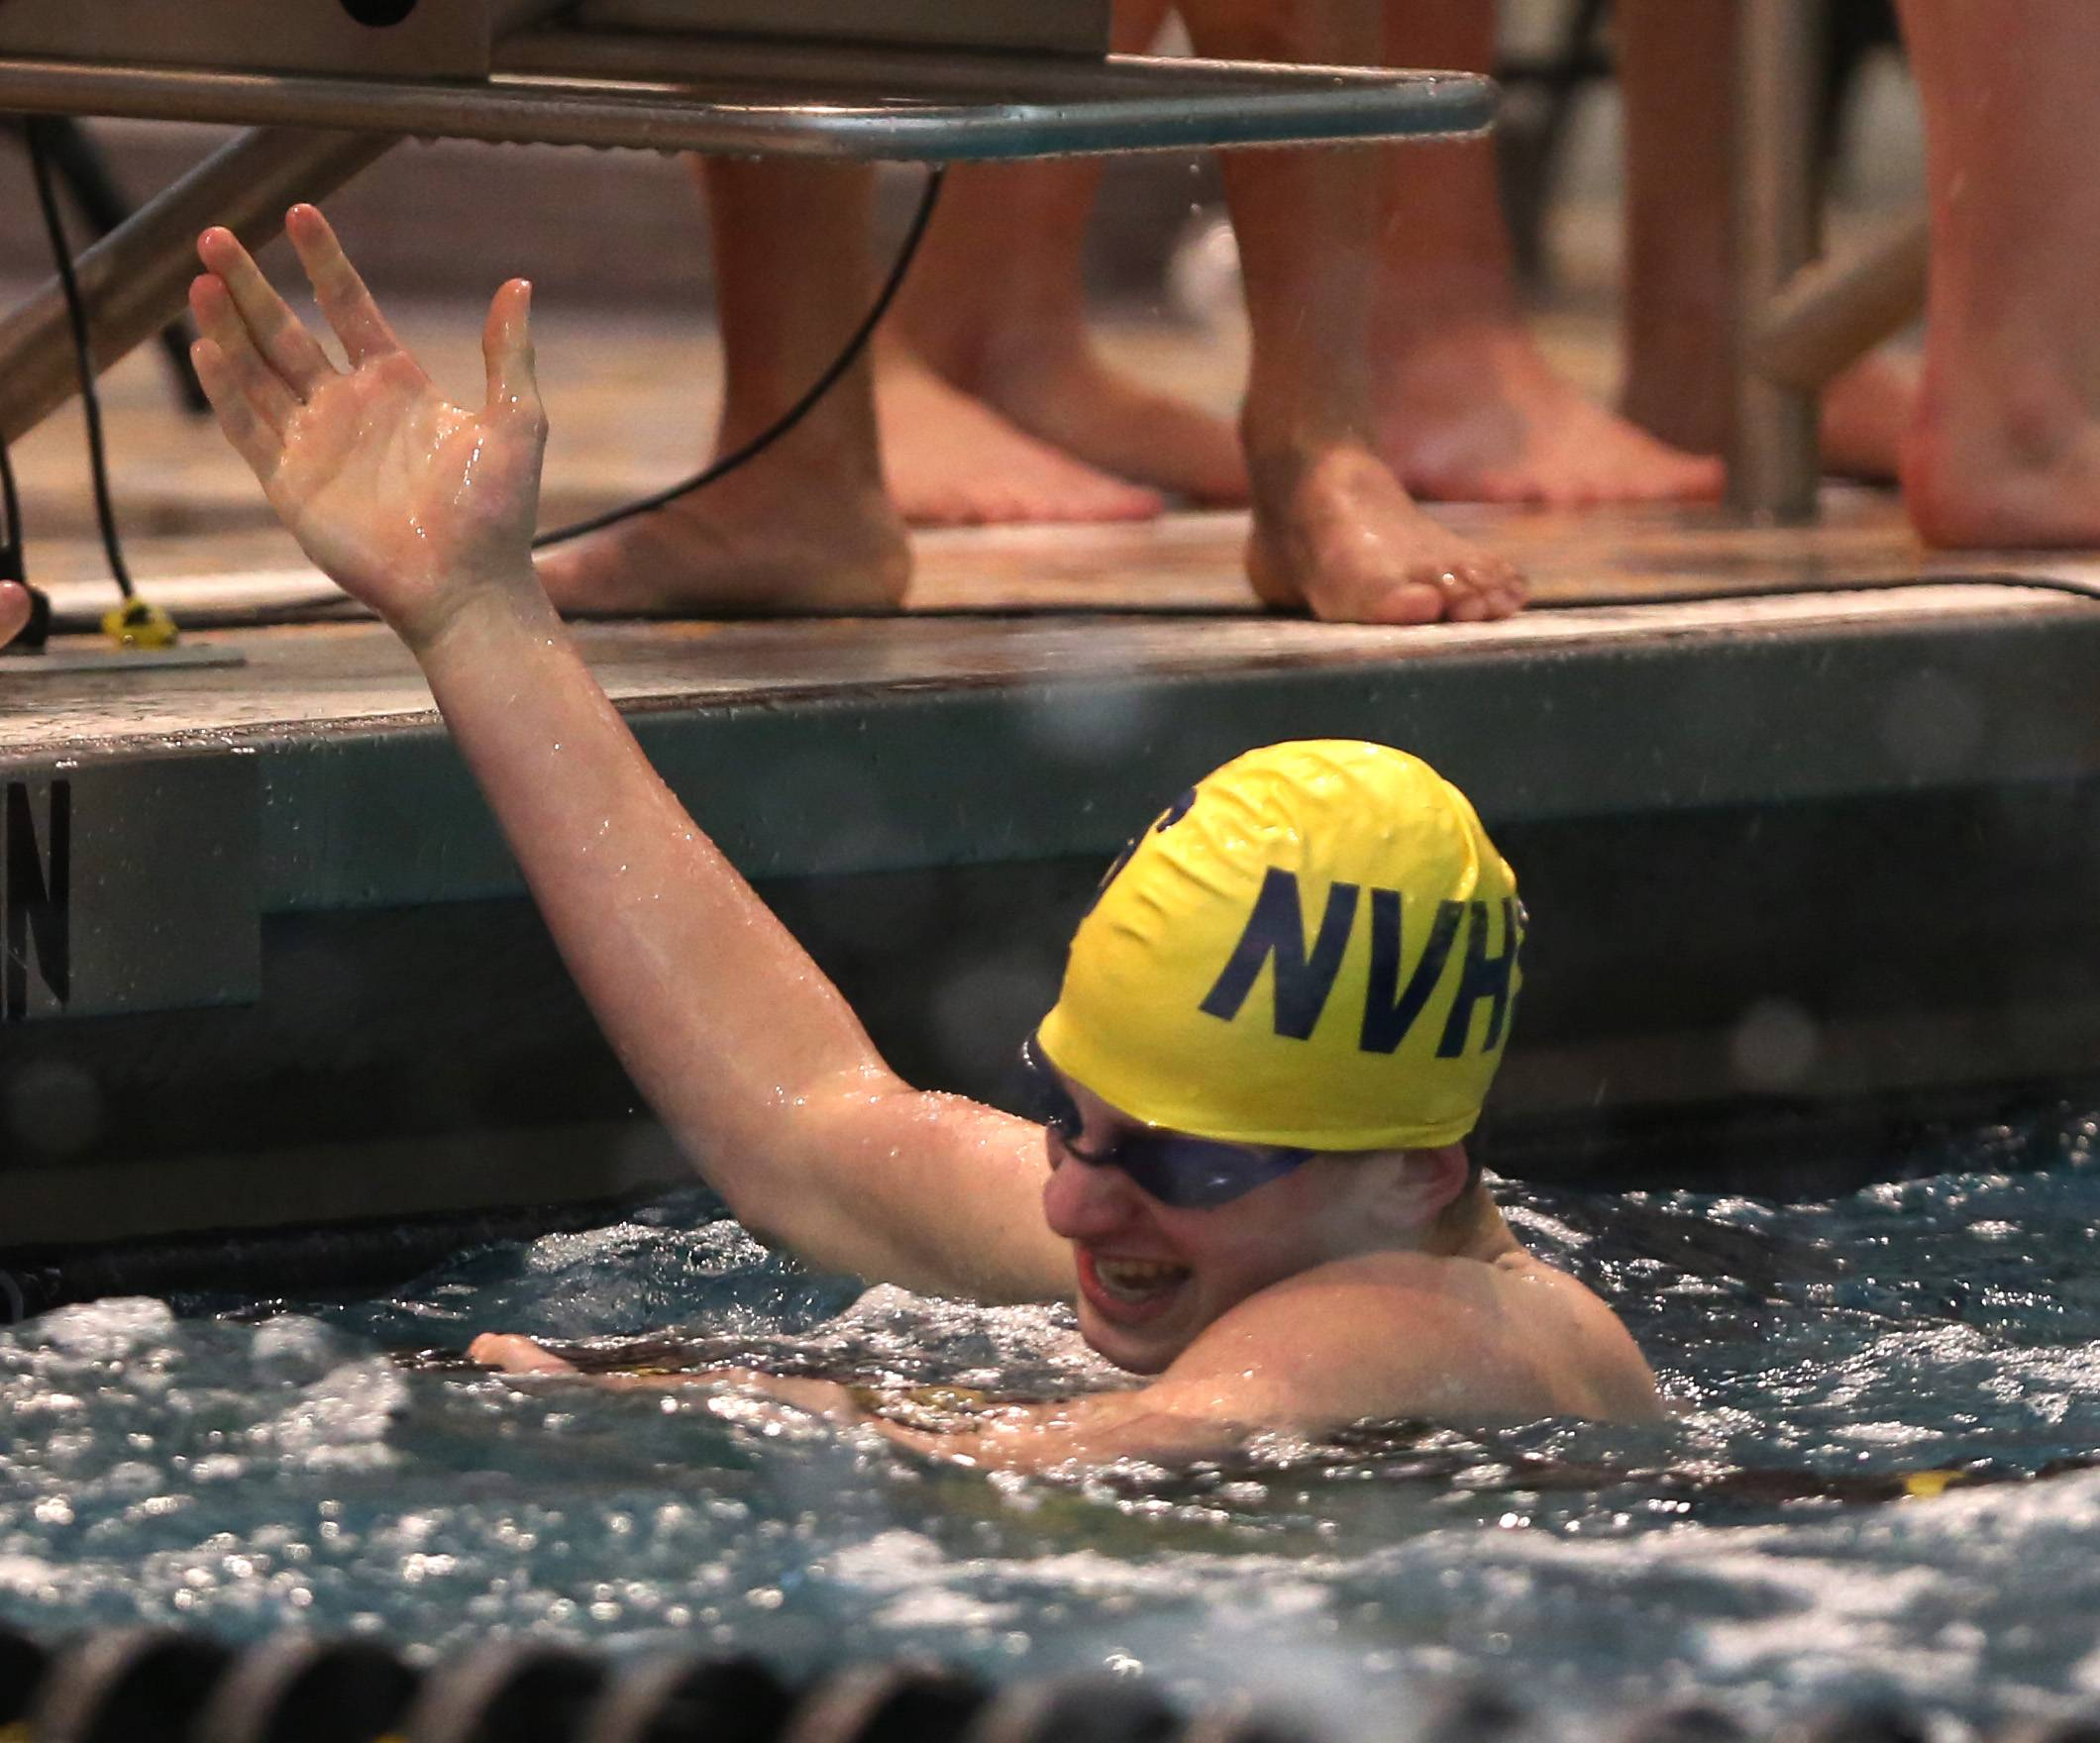 Neuqua Valley's Joe Widuch celebrates a first place finish after anchoring a 400 yard freestyle relay win during the Metea Valley boys swimming sectional.